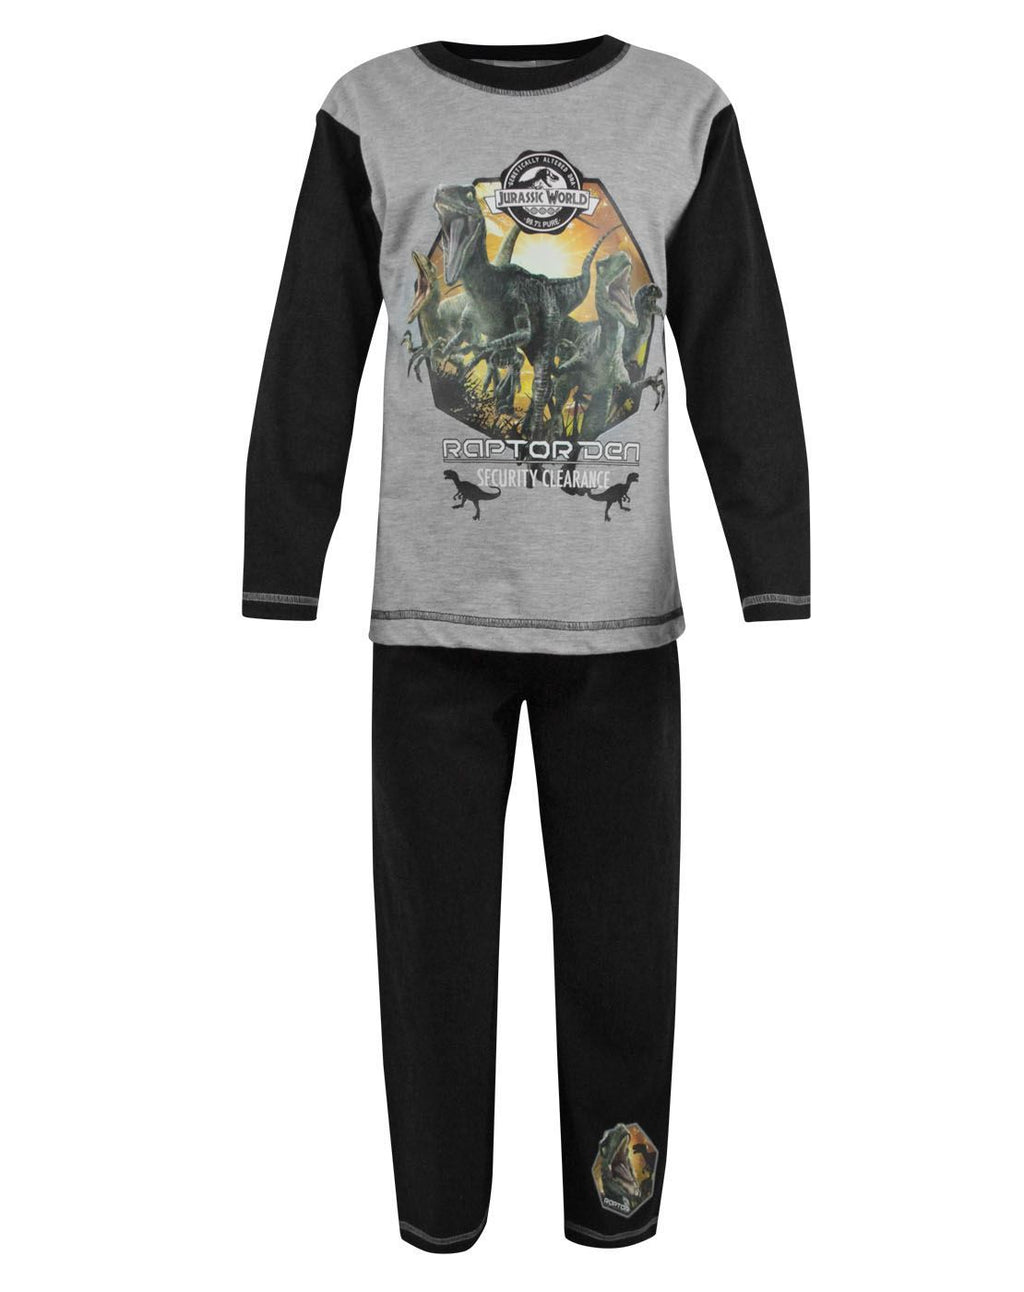 Jurassic World Raptor Den Boy's Pyjamas